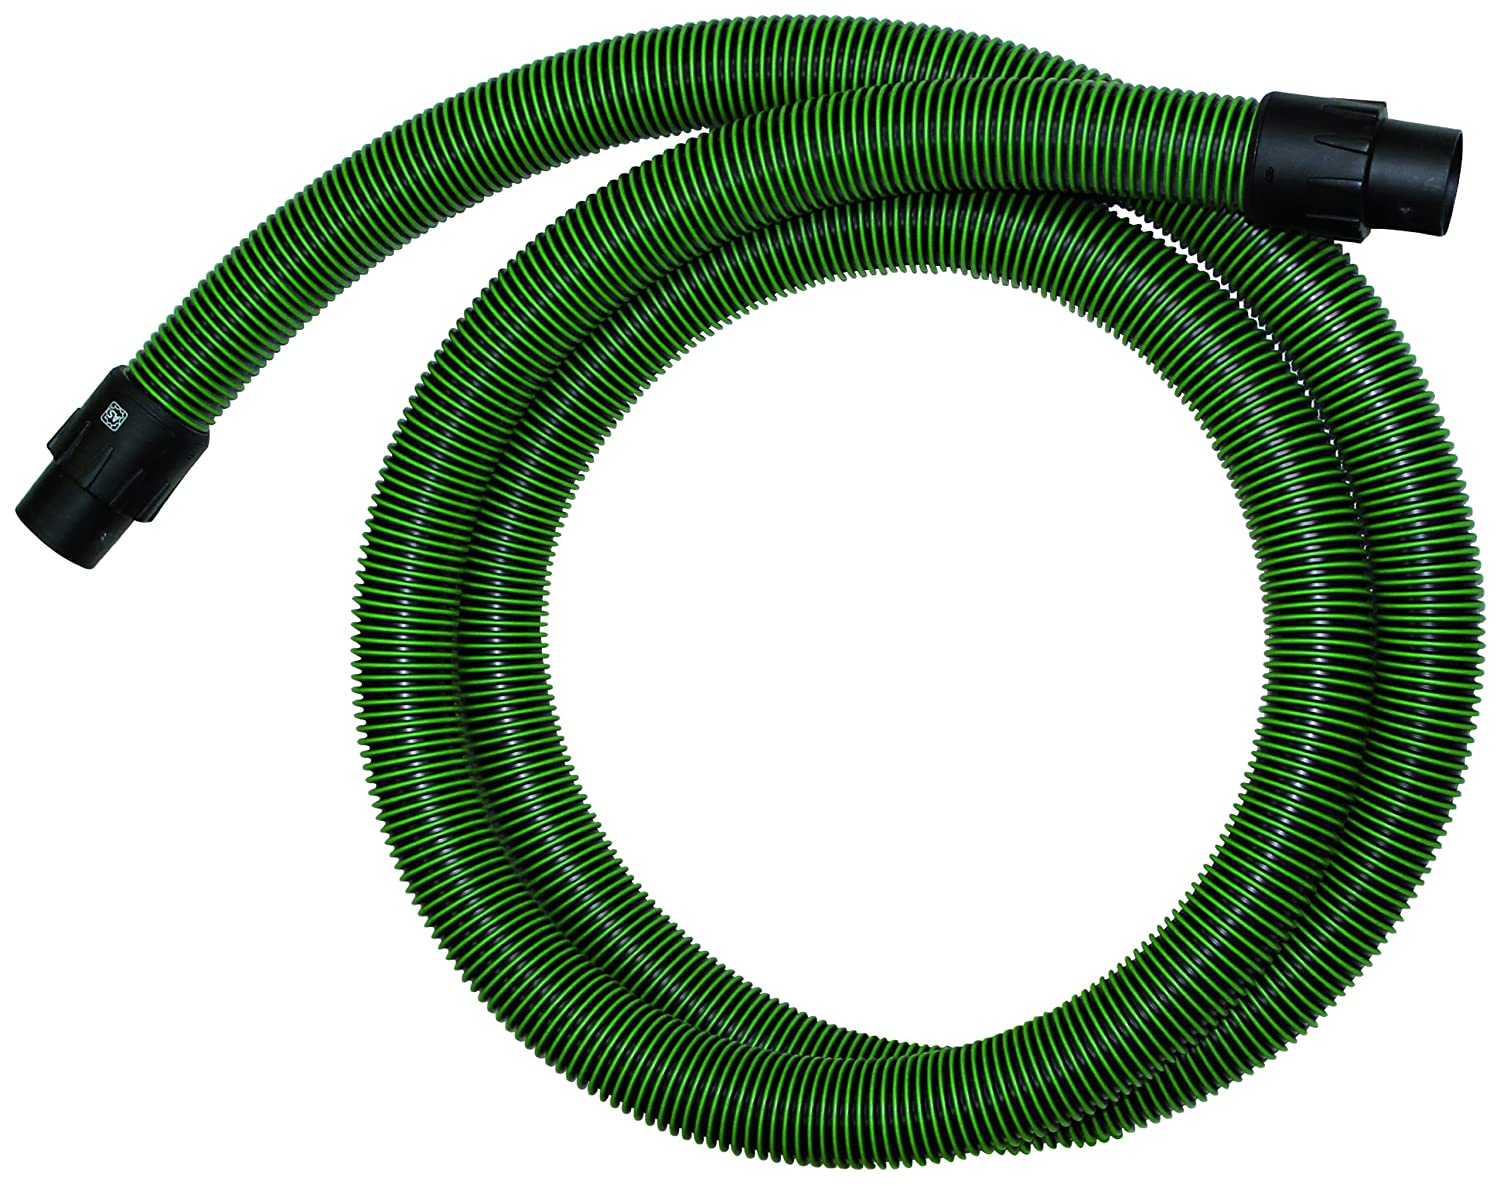 Festool 452890 Antistatic Hose, 50mm X 4m (1 15/16 in X 13 ft) by Festool  B003ITLW1G